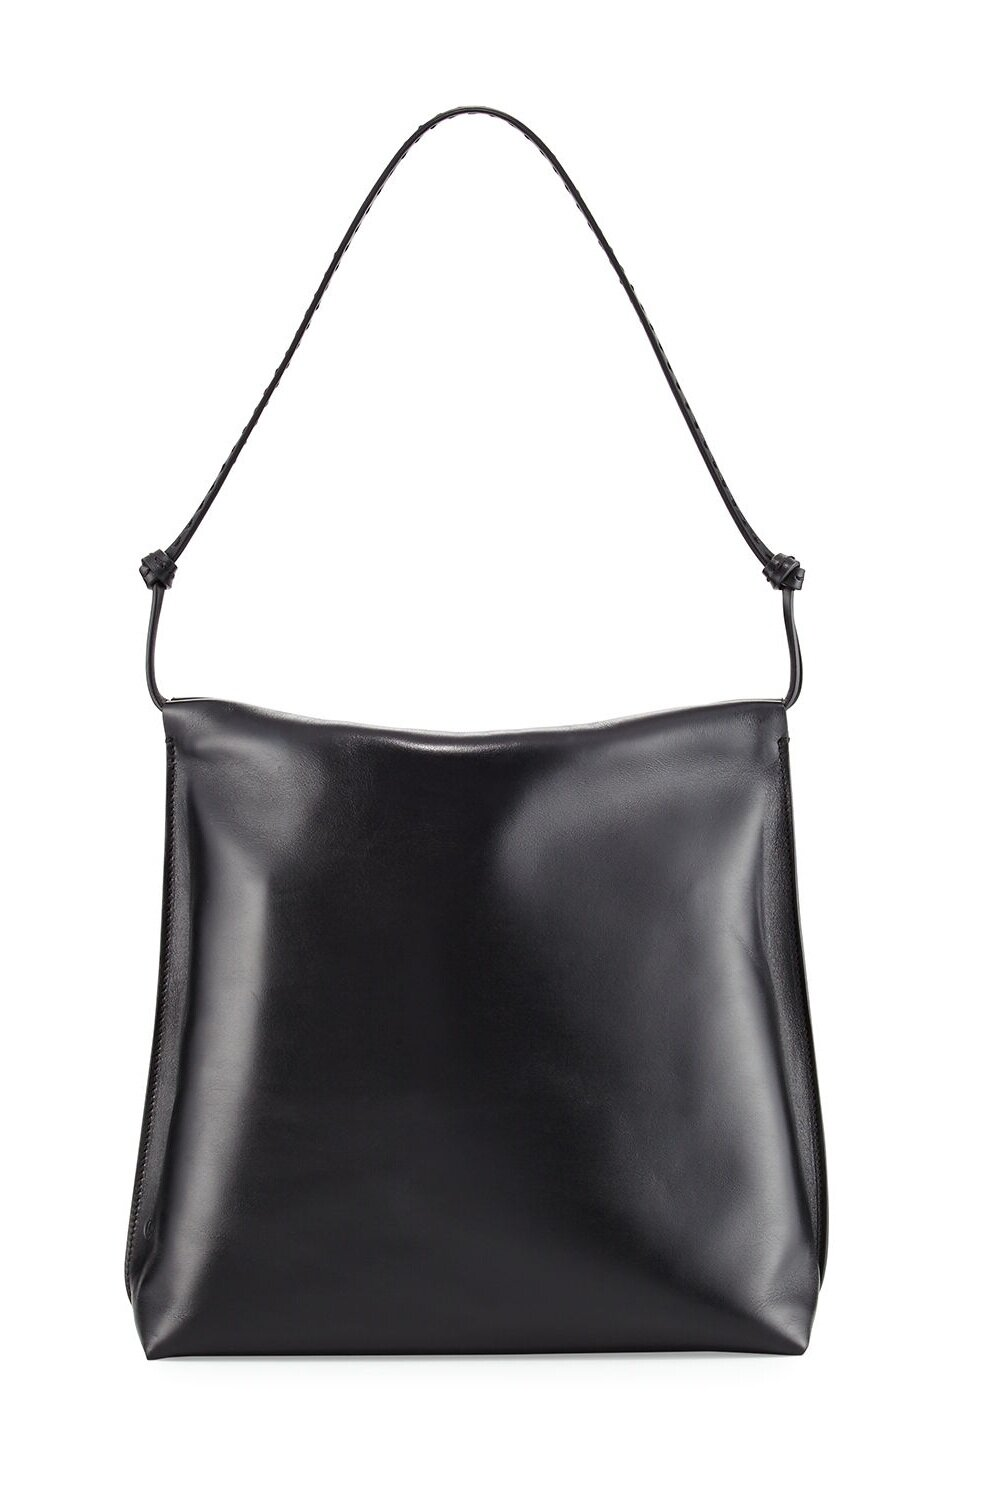 leather Shoulder bag - by The Row